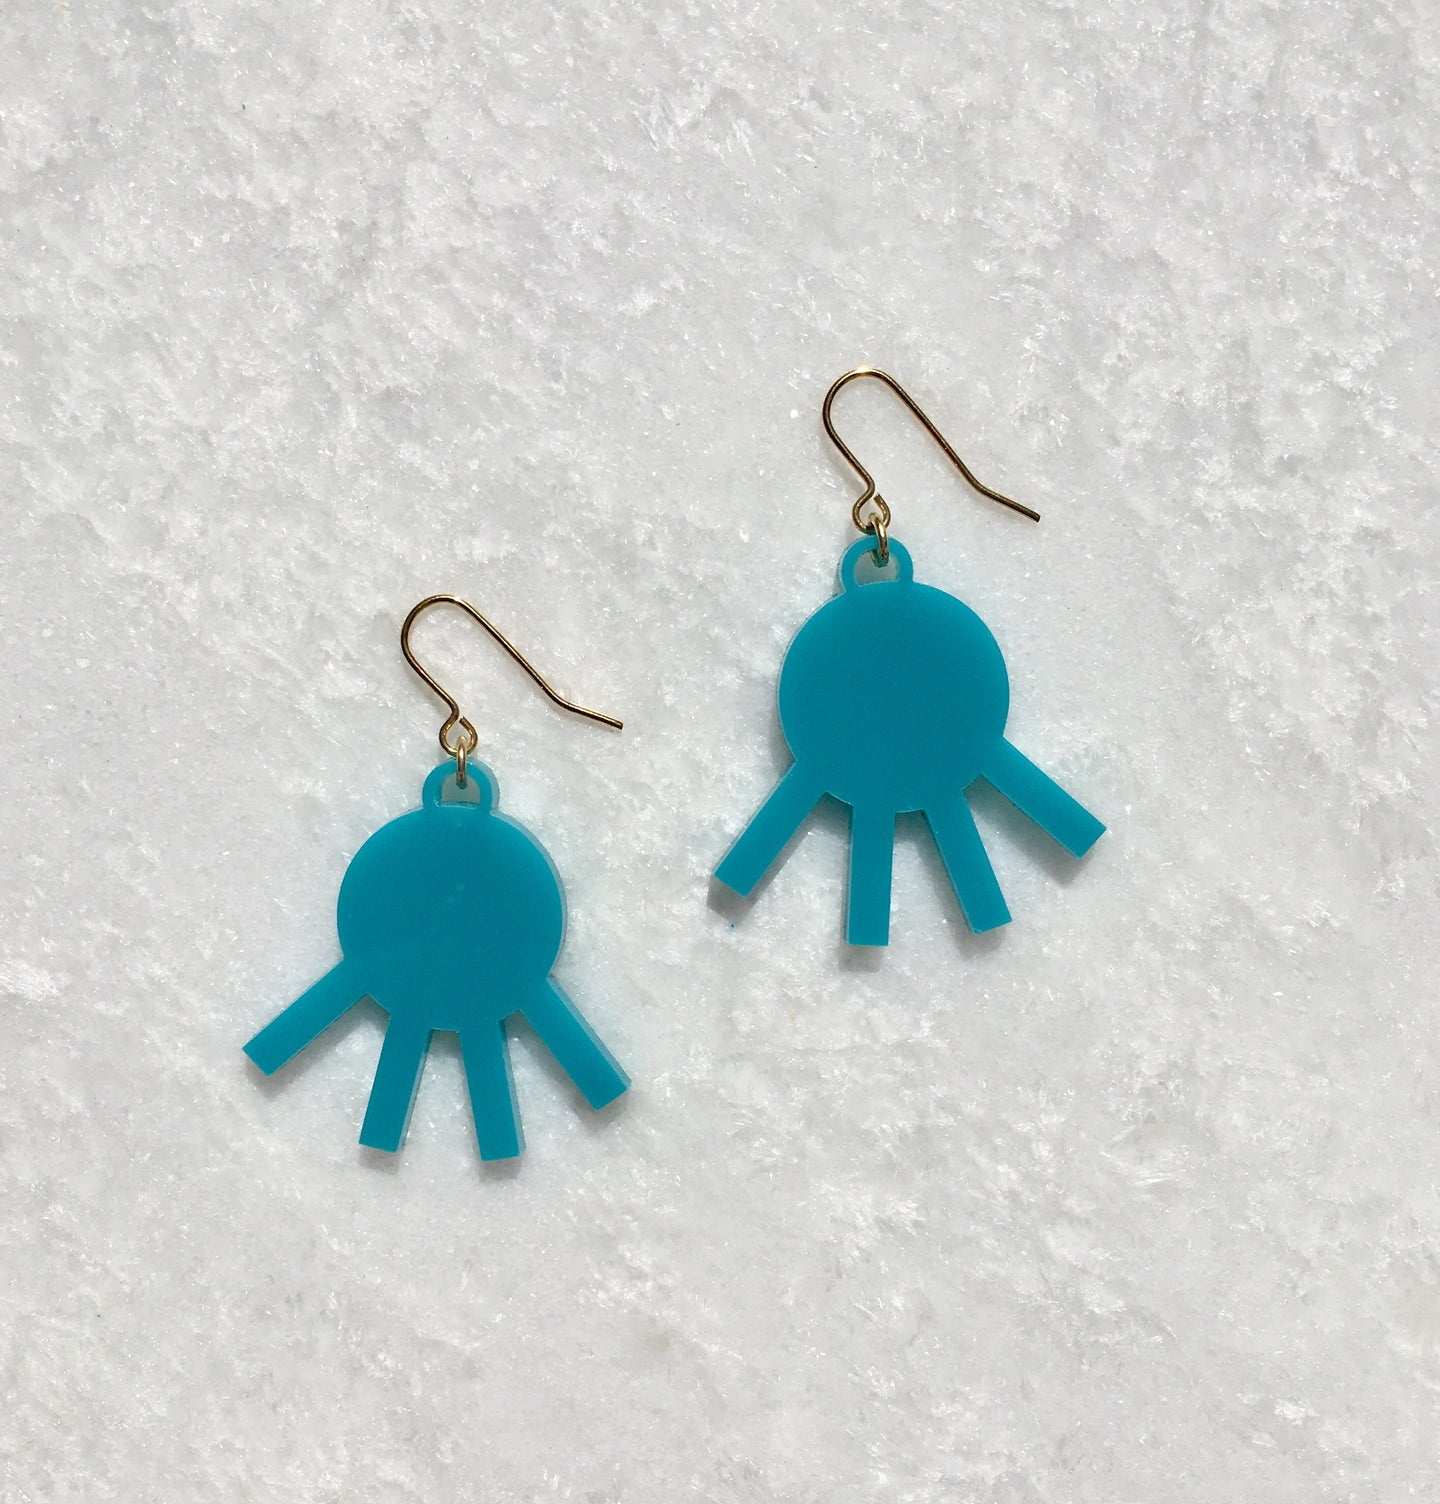 Remi Drop Earrings in Turquoise - hall-wade